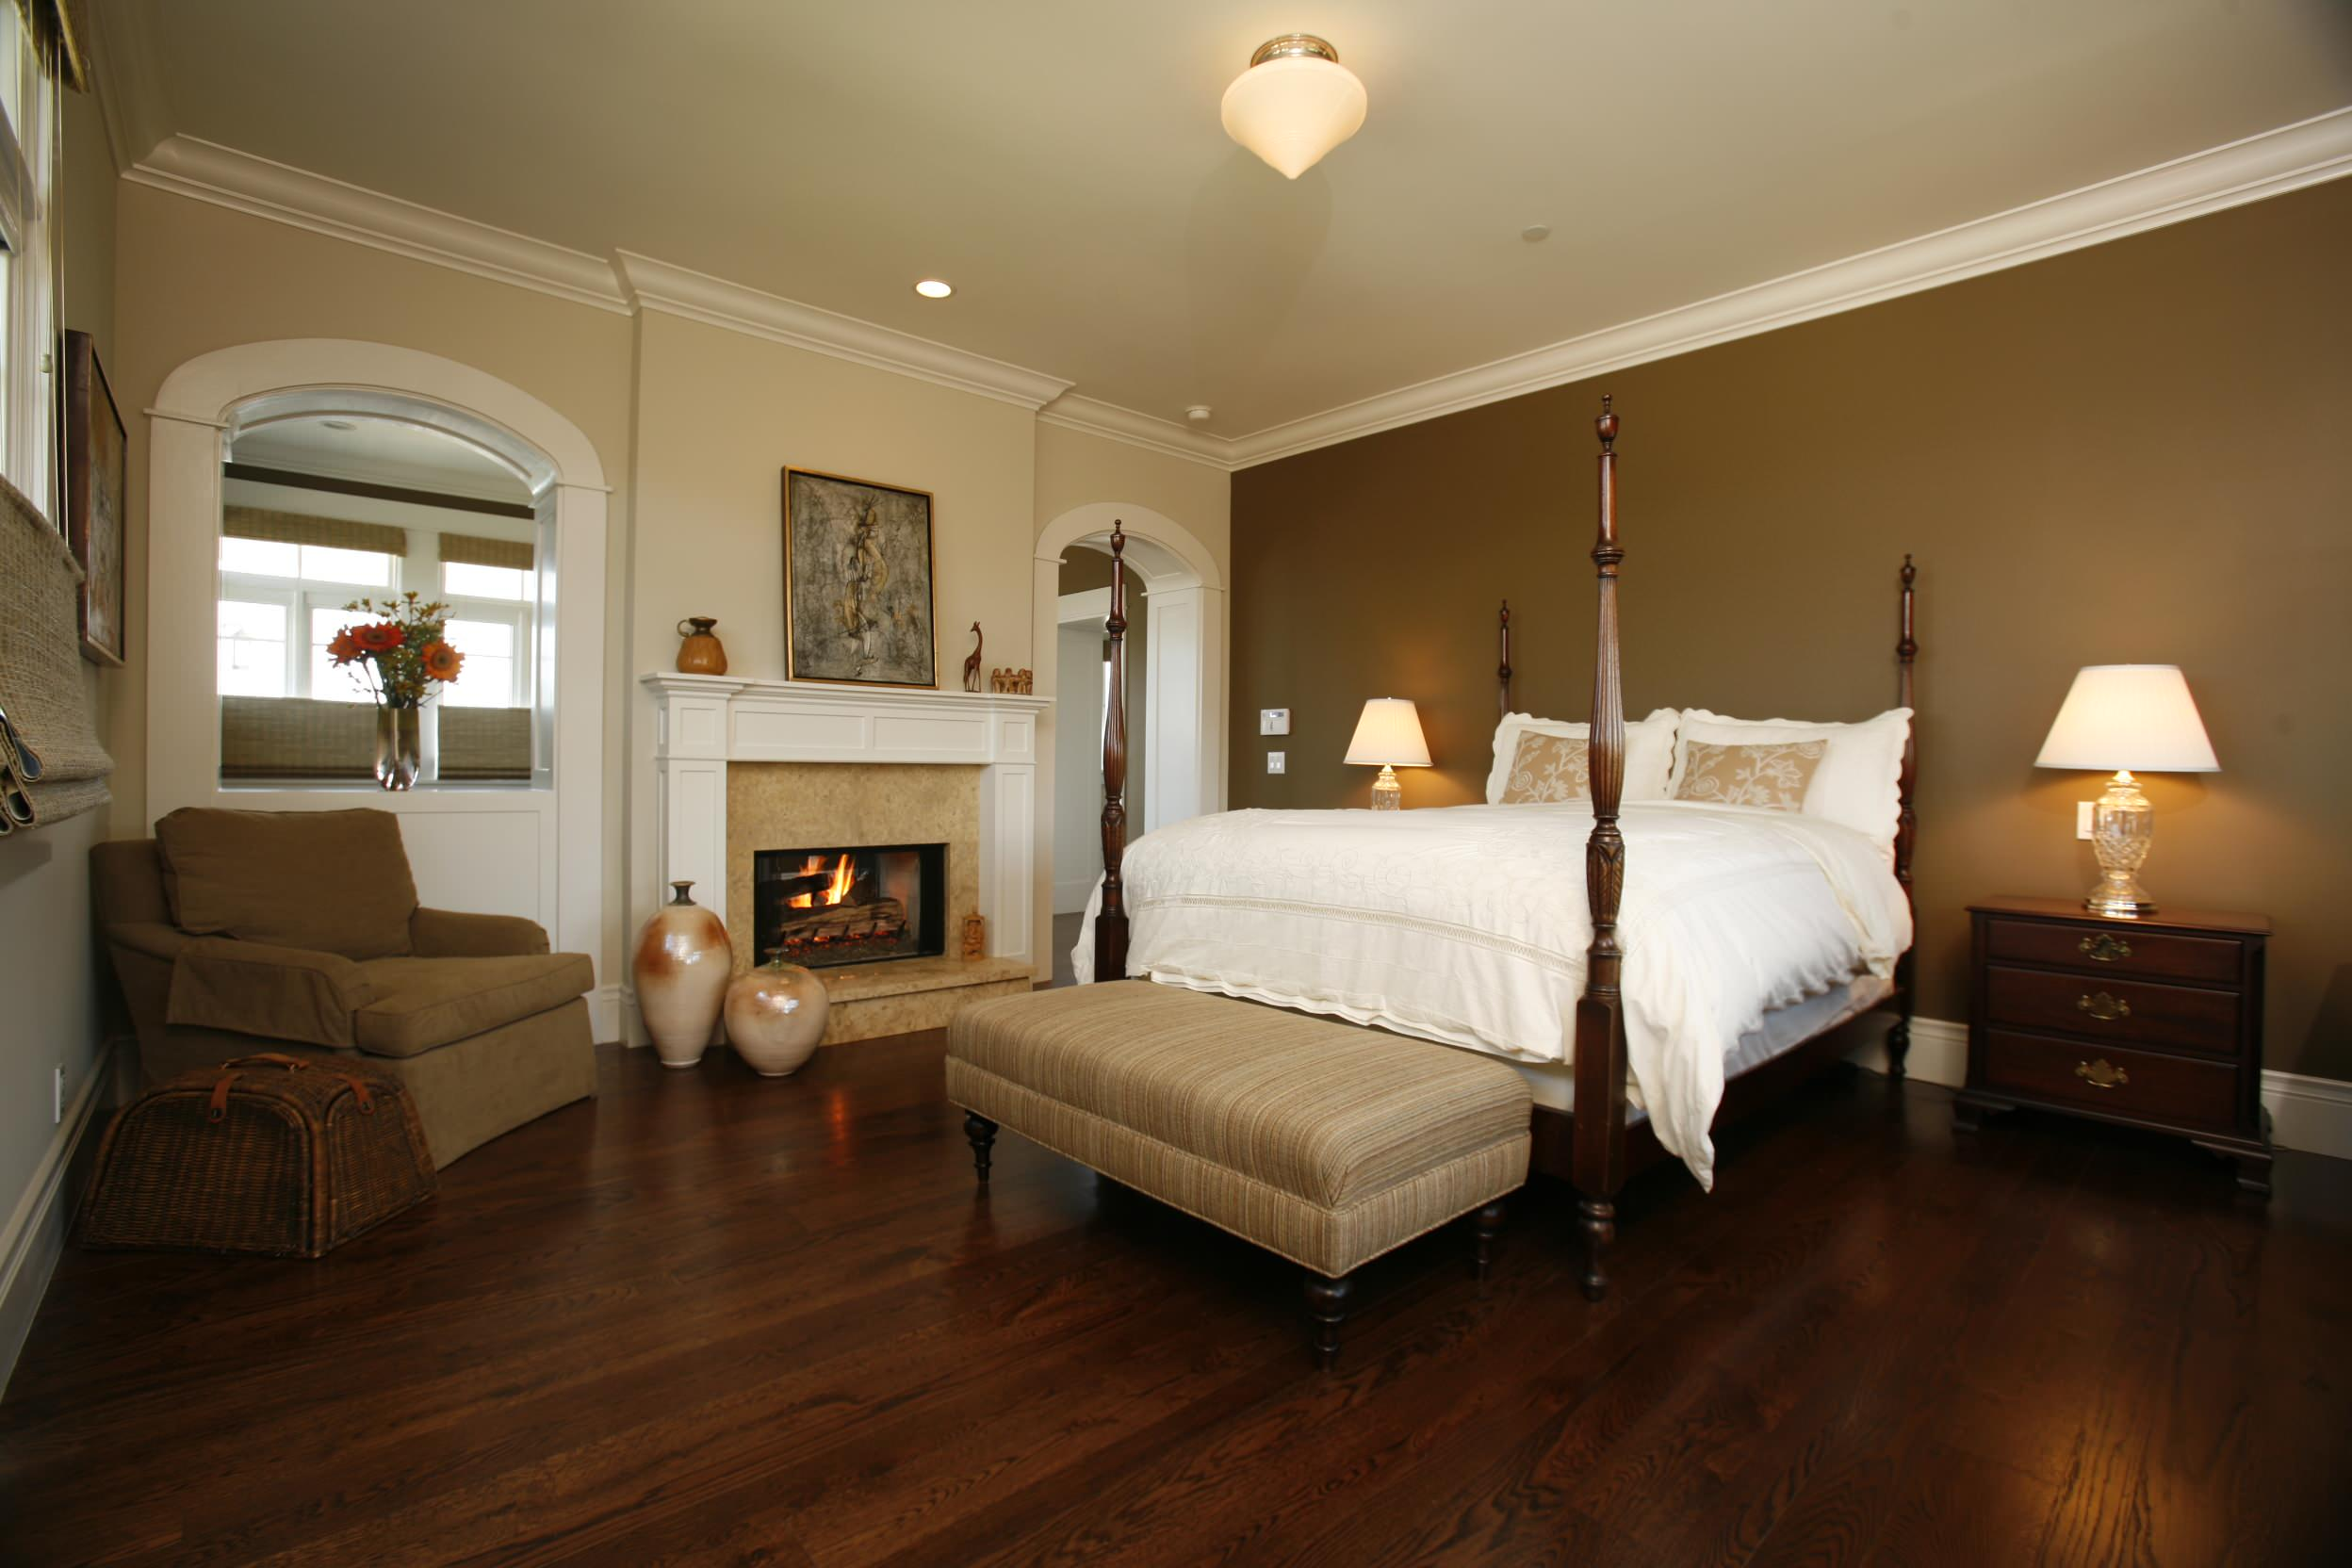 What colors look good with brown in Traditional Bedroom beadboard beige wall crown molding fireplace mantel iron bed pained windows